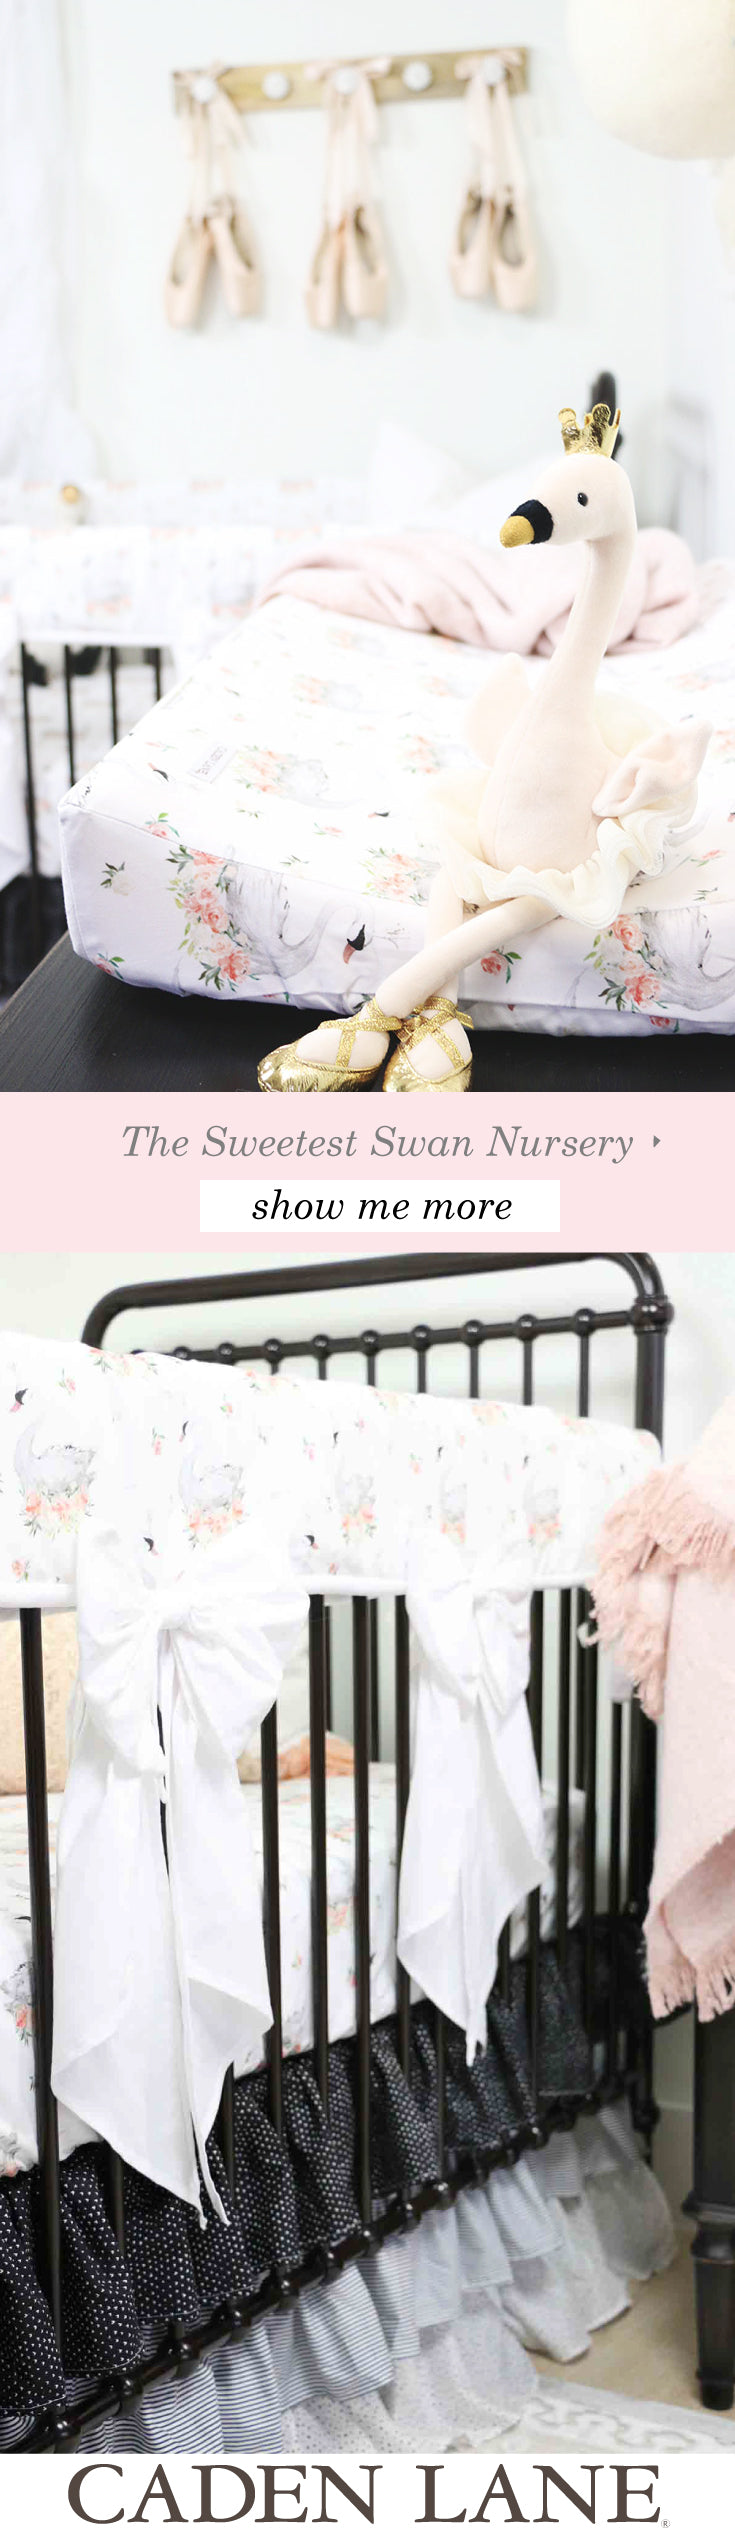 The Sweetest Swan Lake Ballerina Nursery We're in Love with this room!